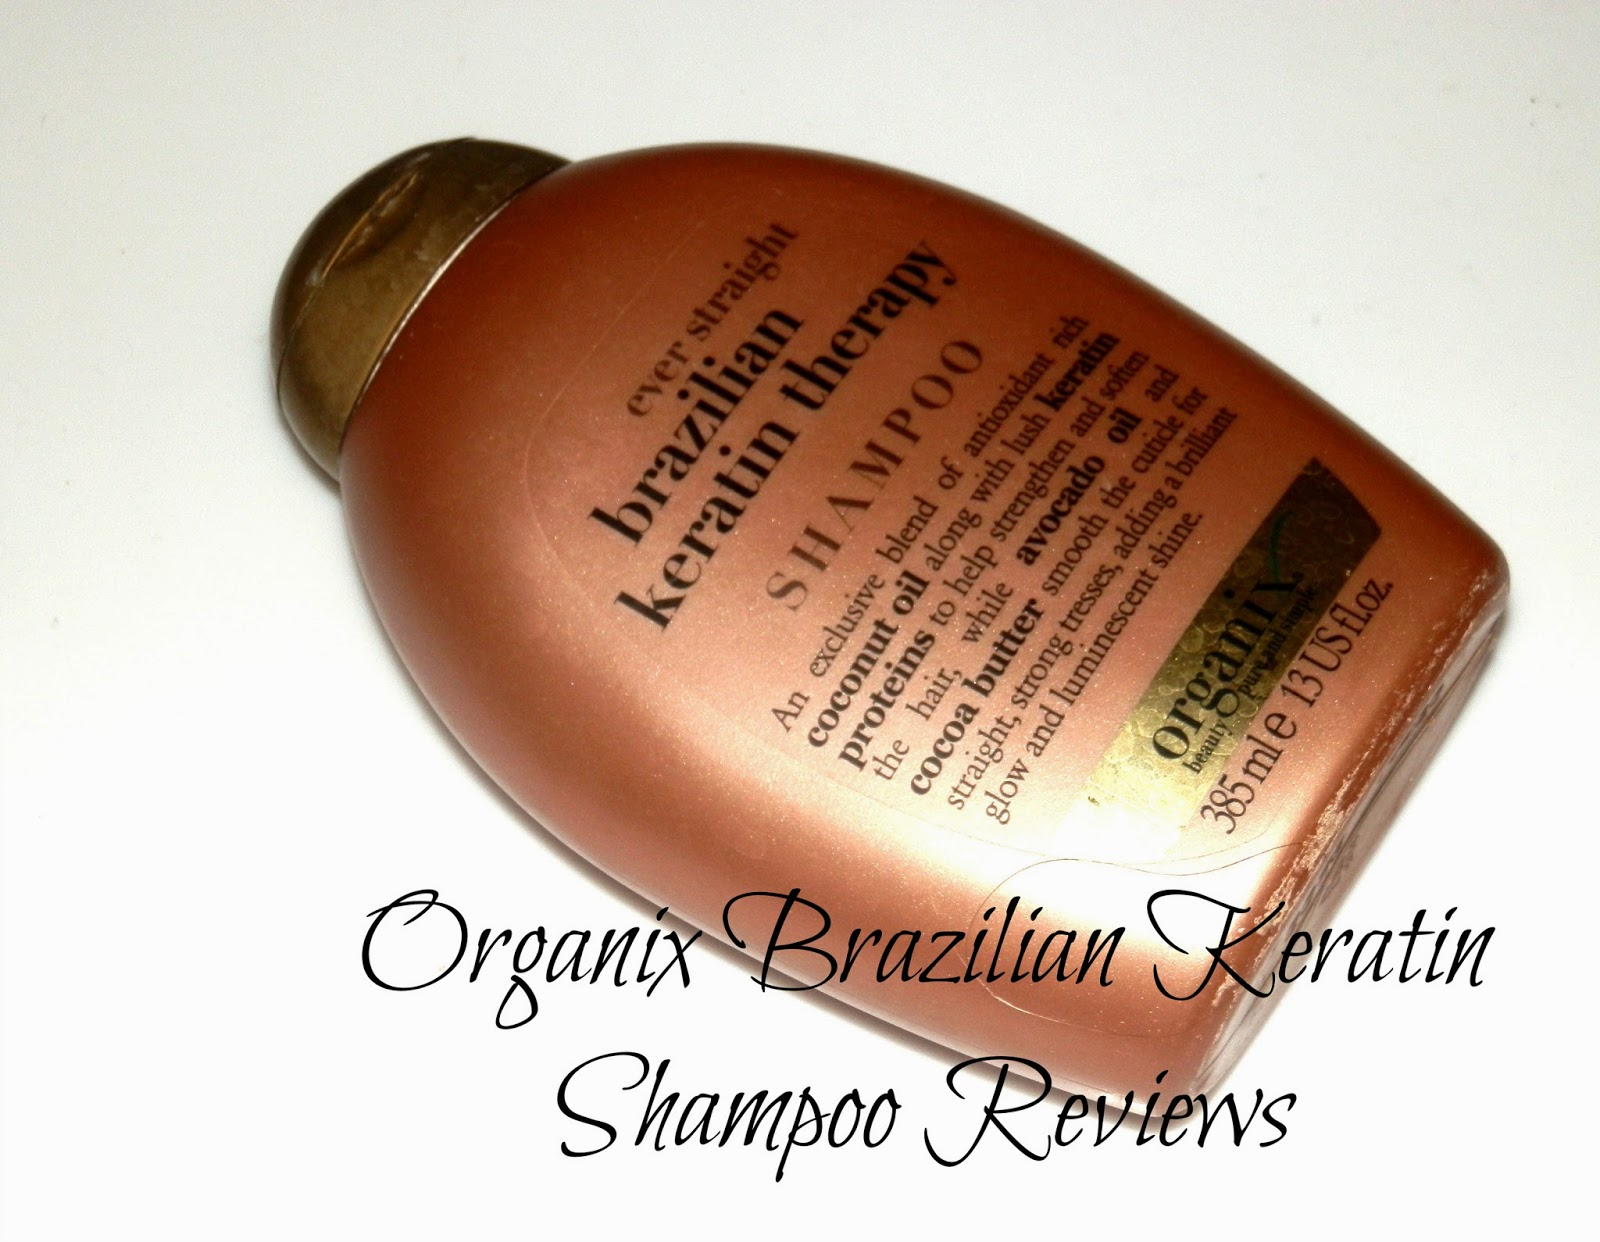 Organix Brazilian Keratin Shampoo Reviews